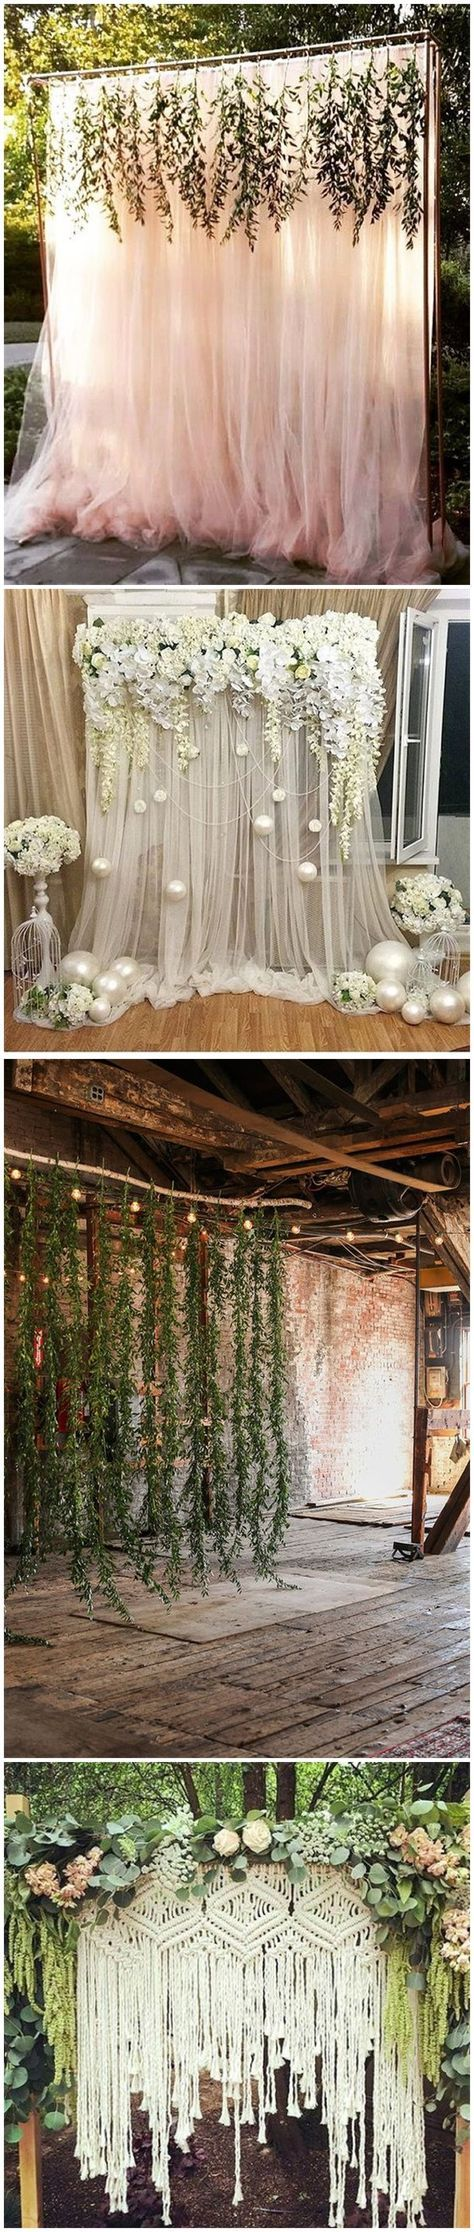 30 Unique and Breathtaking Wedding Backdrop Ideas ...